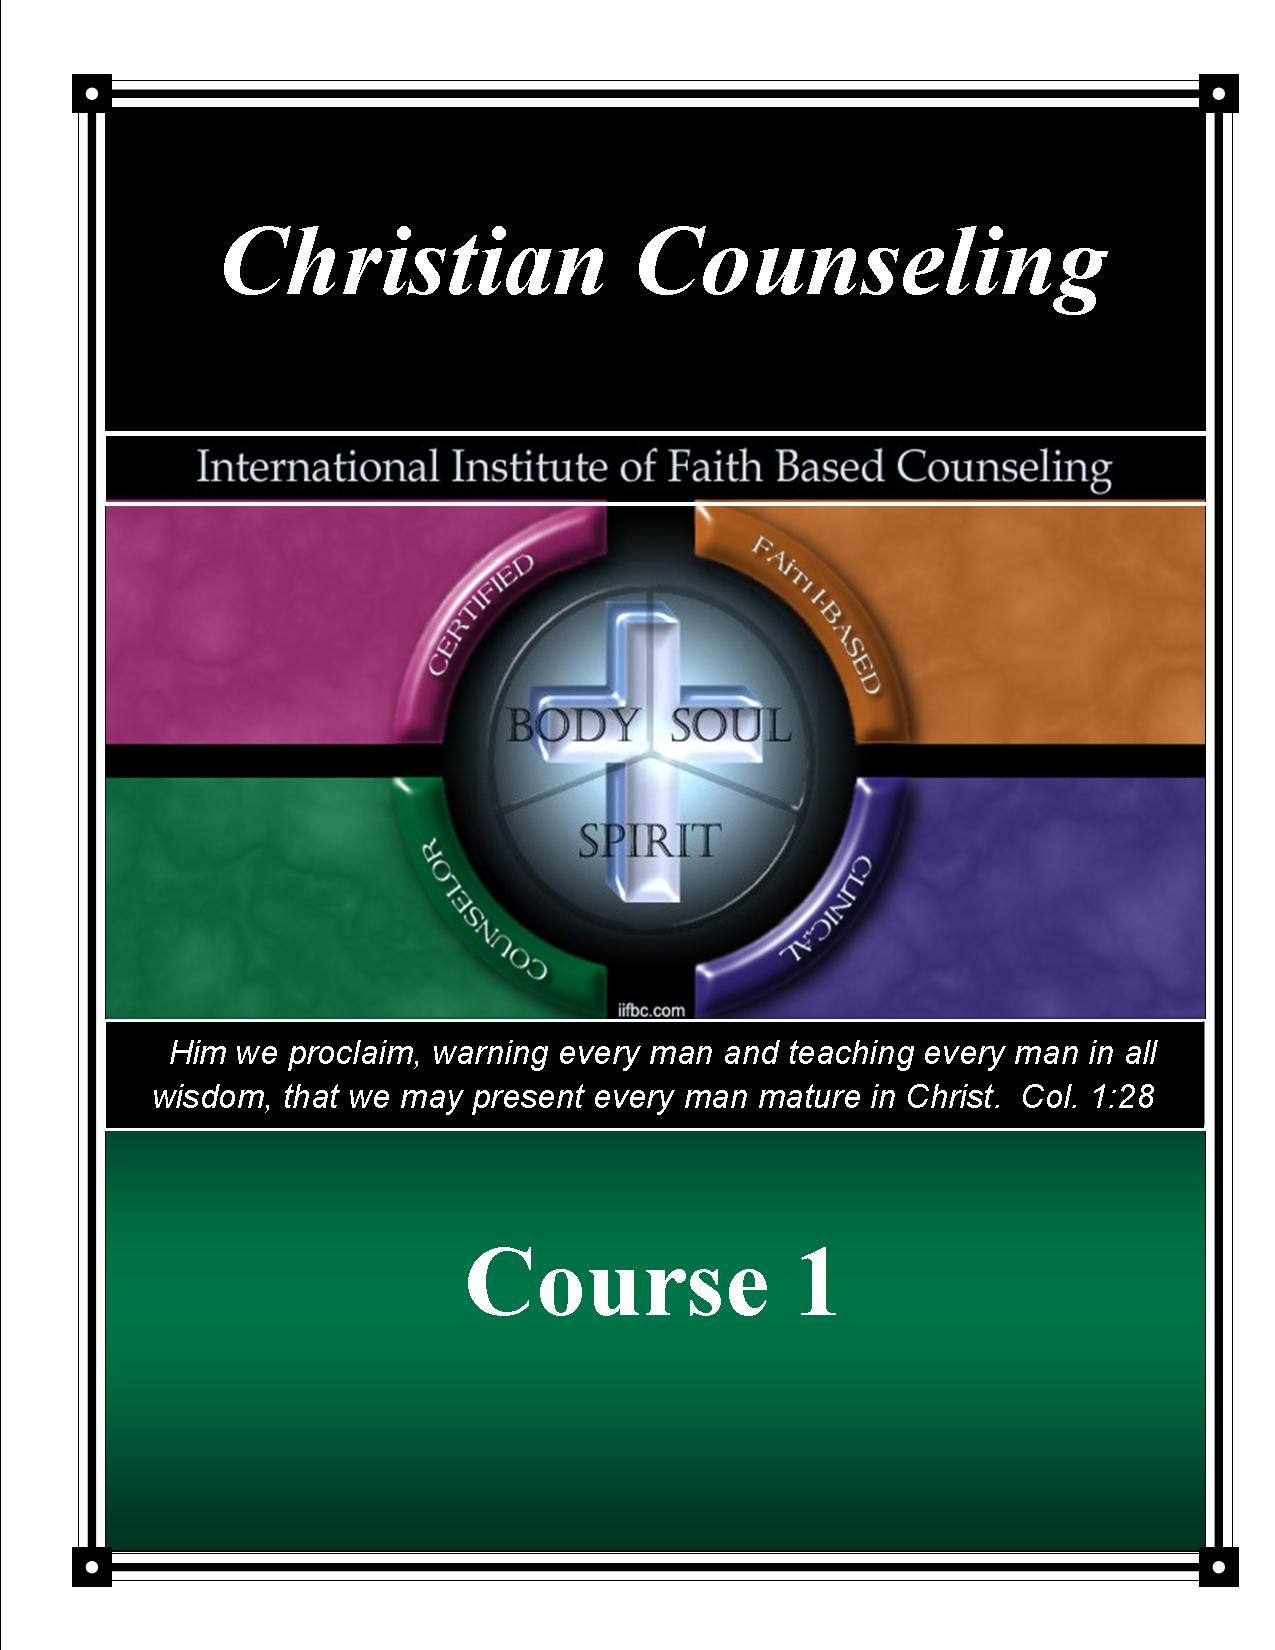 IIFBC Course 1 Christian Counseling; 99 PDF text and